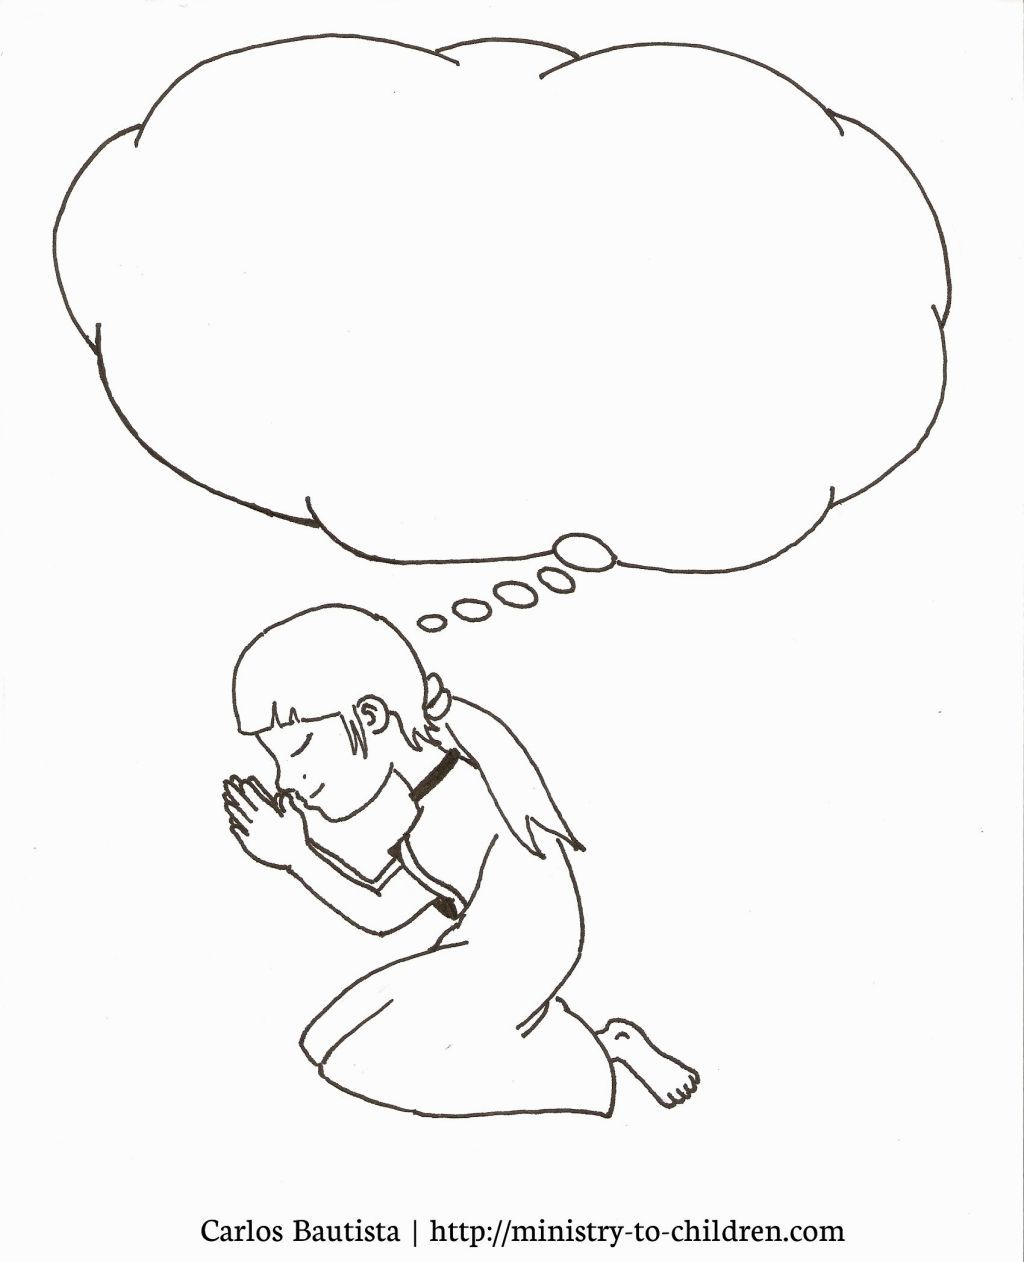 Child Praying Coloring Page   Coloring Pages   Pinterest   Child